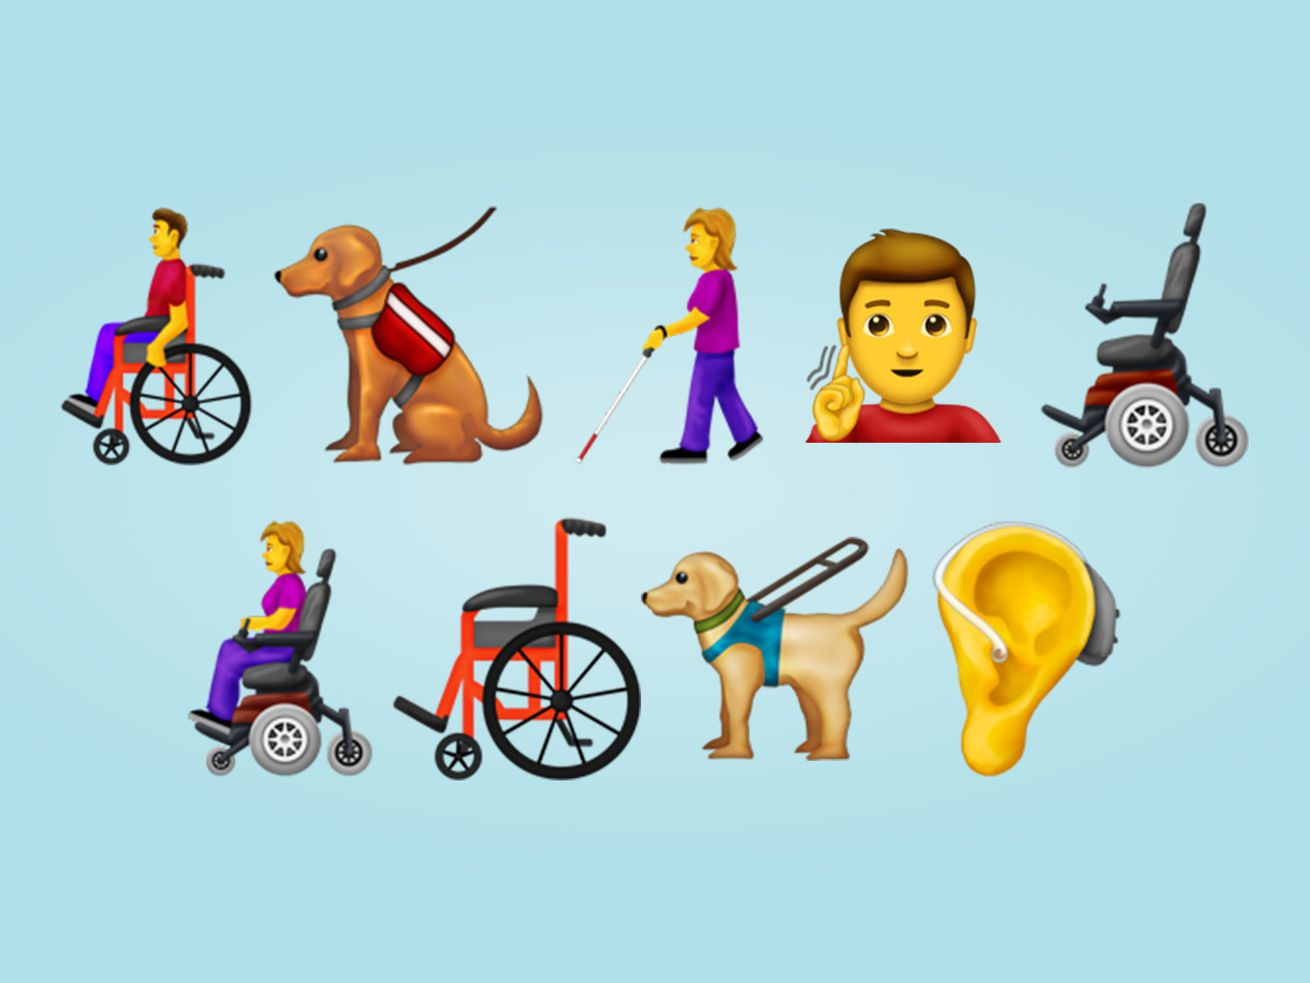 wheelchair emoji best office chair mat for hardwood floors designing a symbol disability architecture